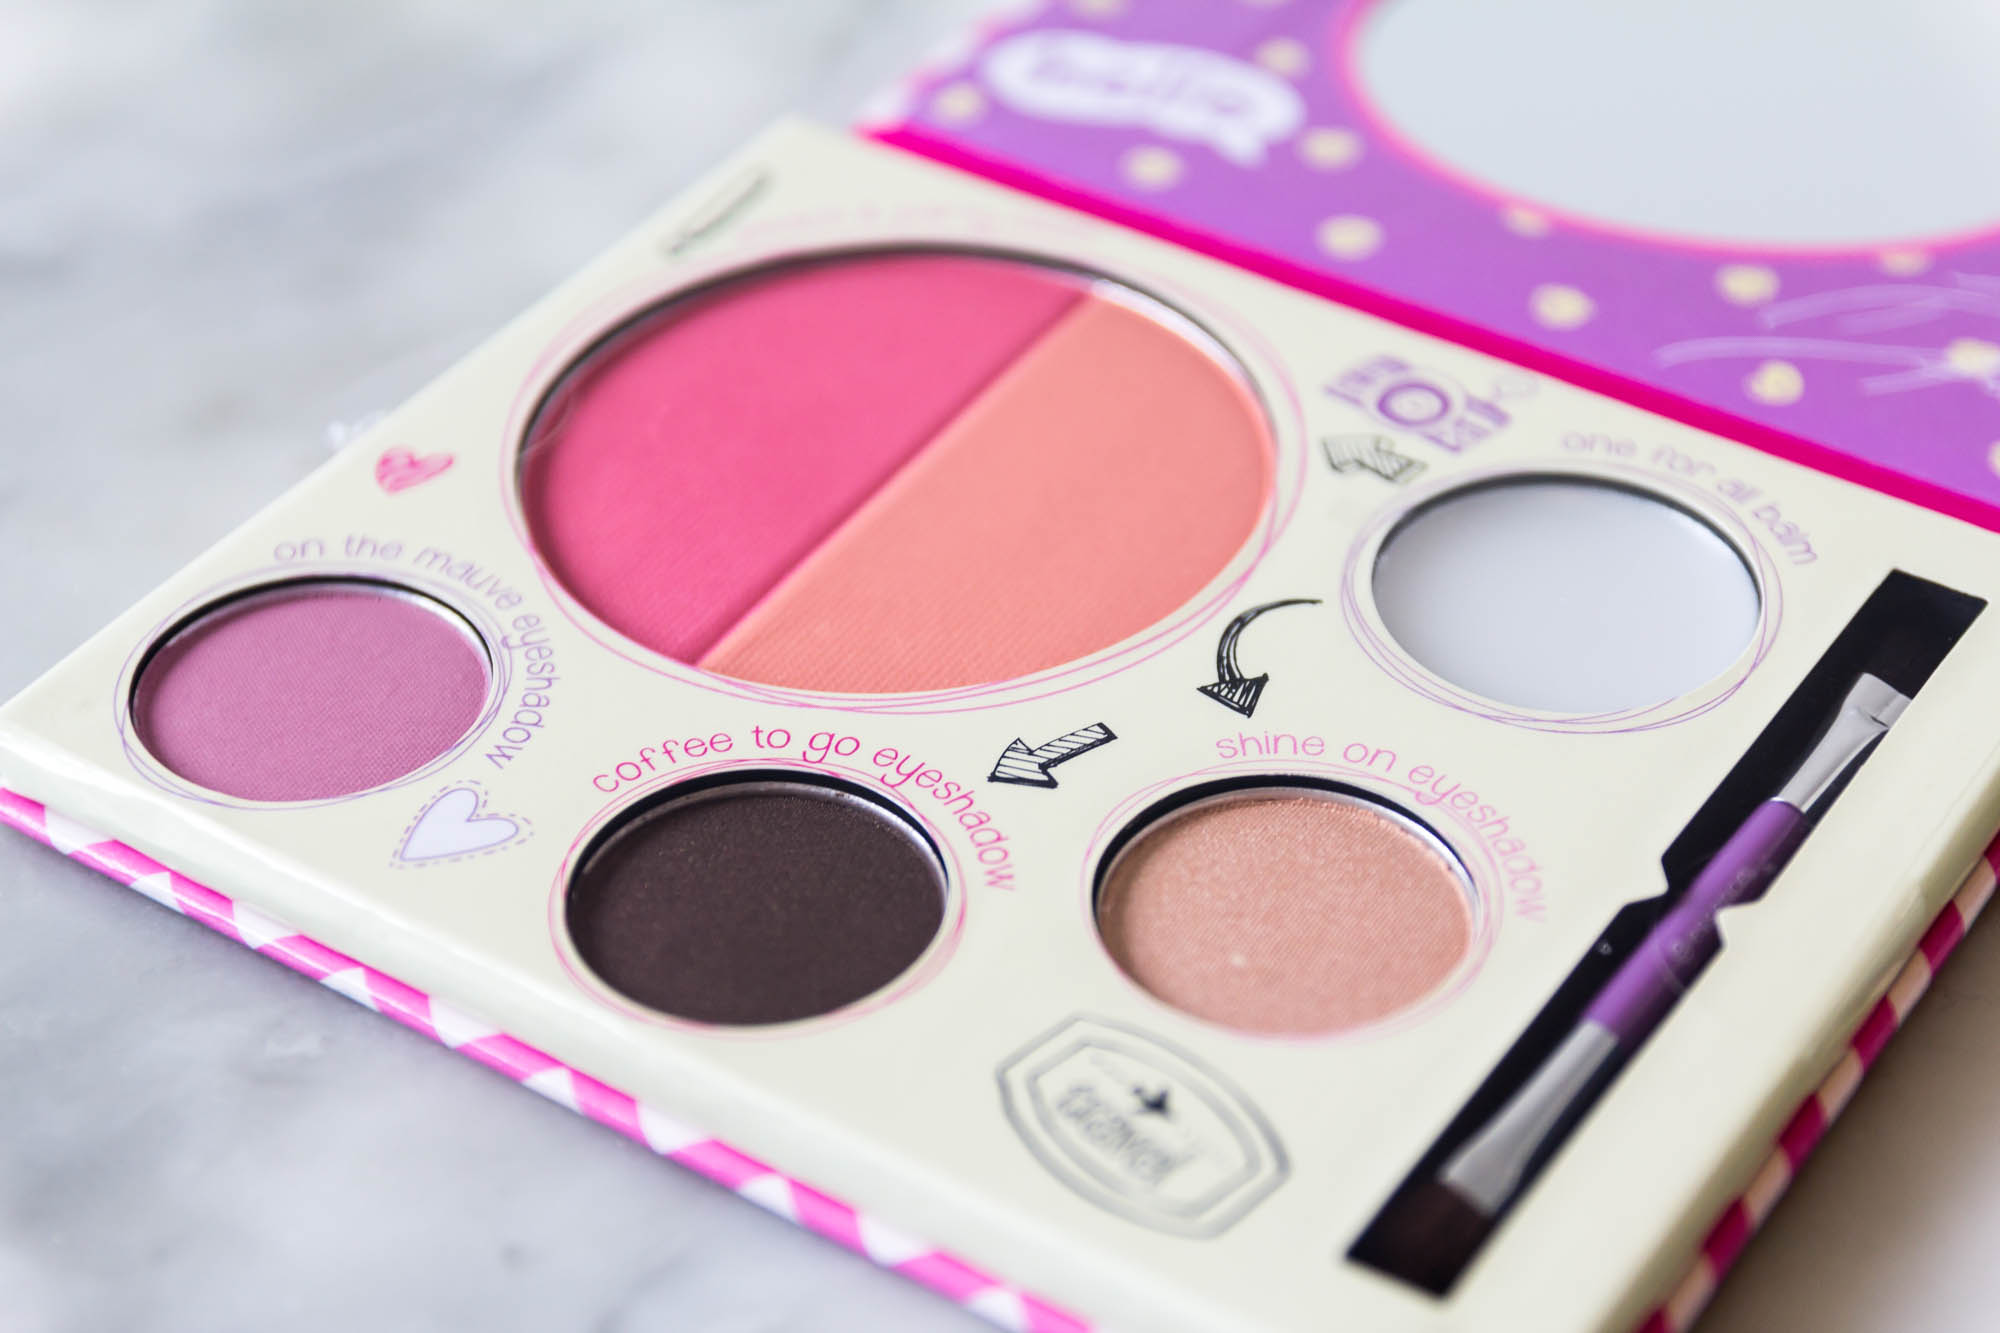 essence cosmetics touch up to go one for all palette